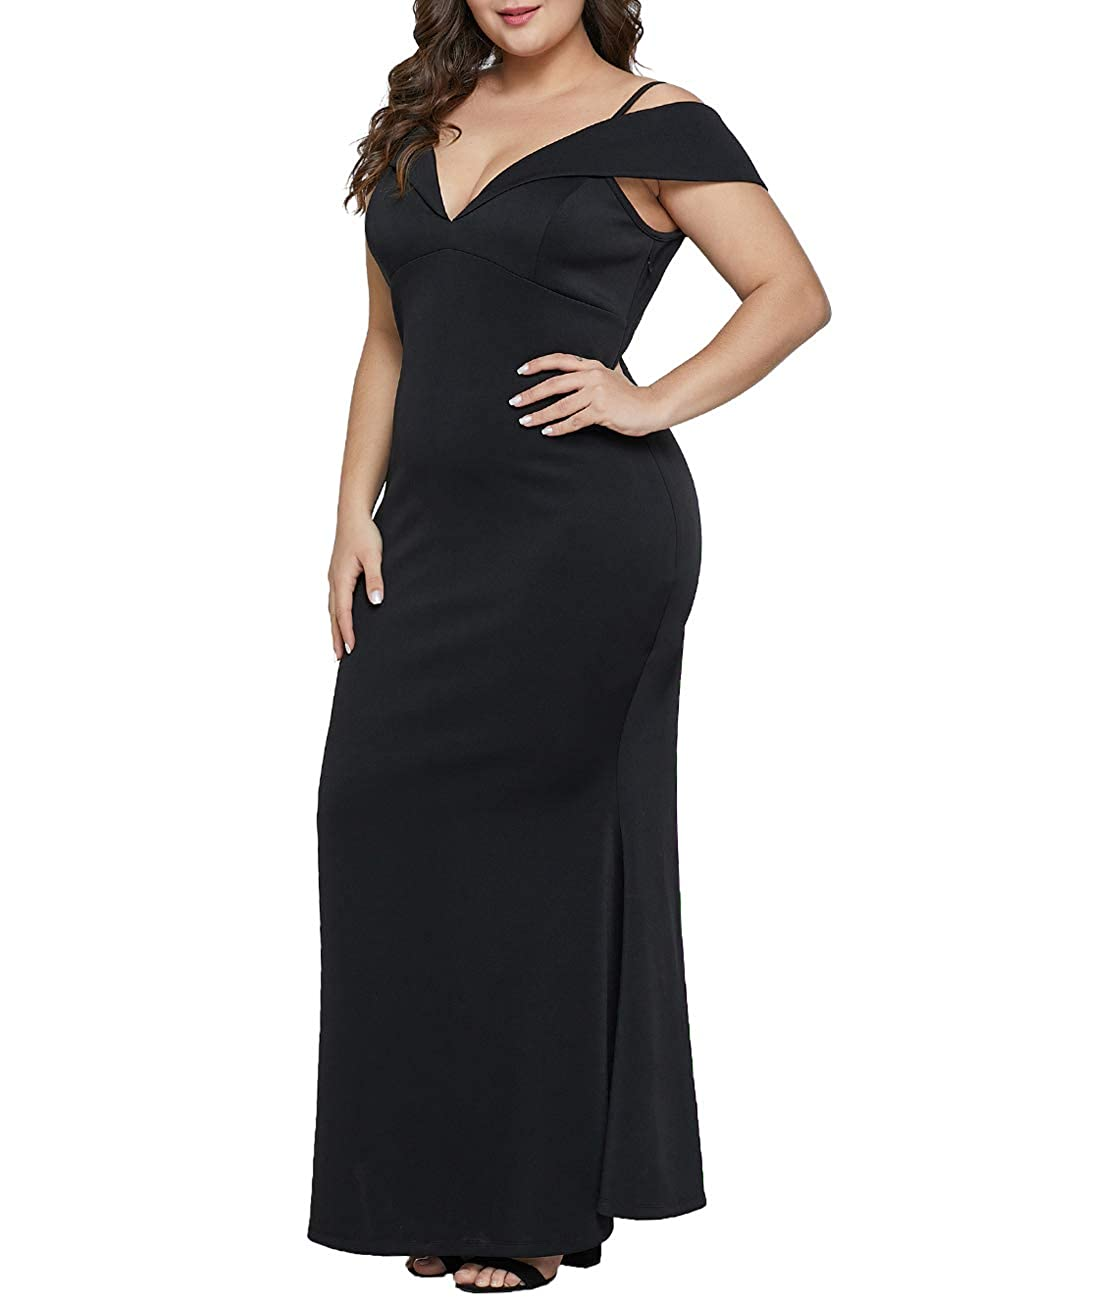 283629a9c88 Amazon.com  Lalagen Women s Plus Size Off Shoulder Long Formal Party Dress  Evening Gown  Clothing